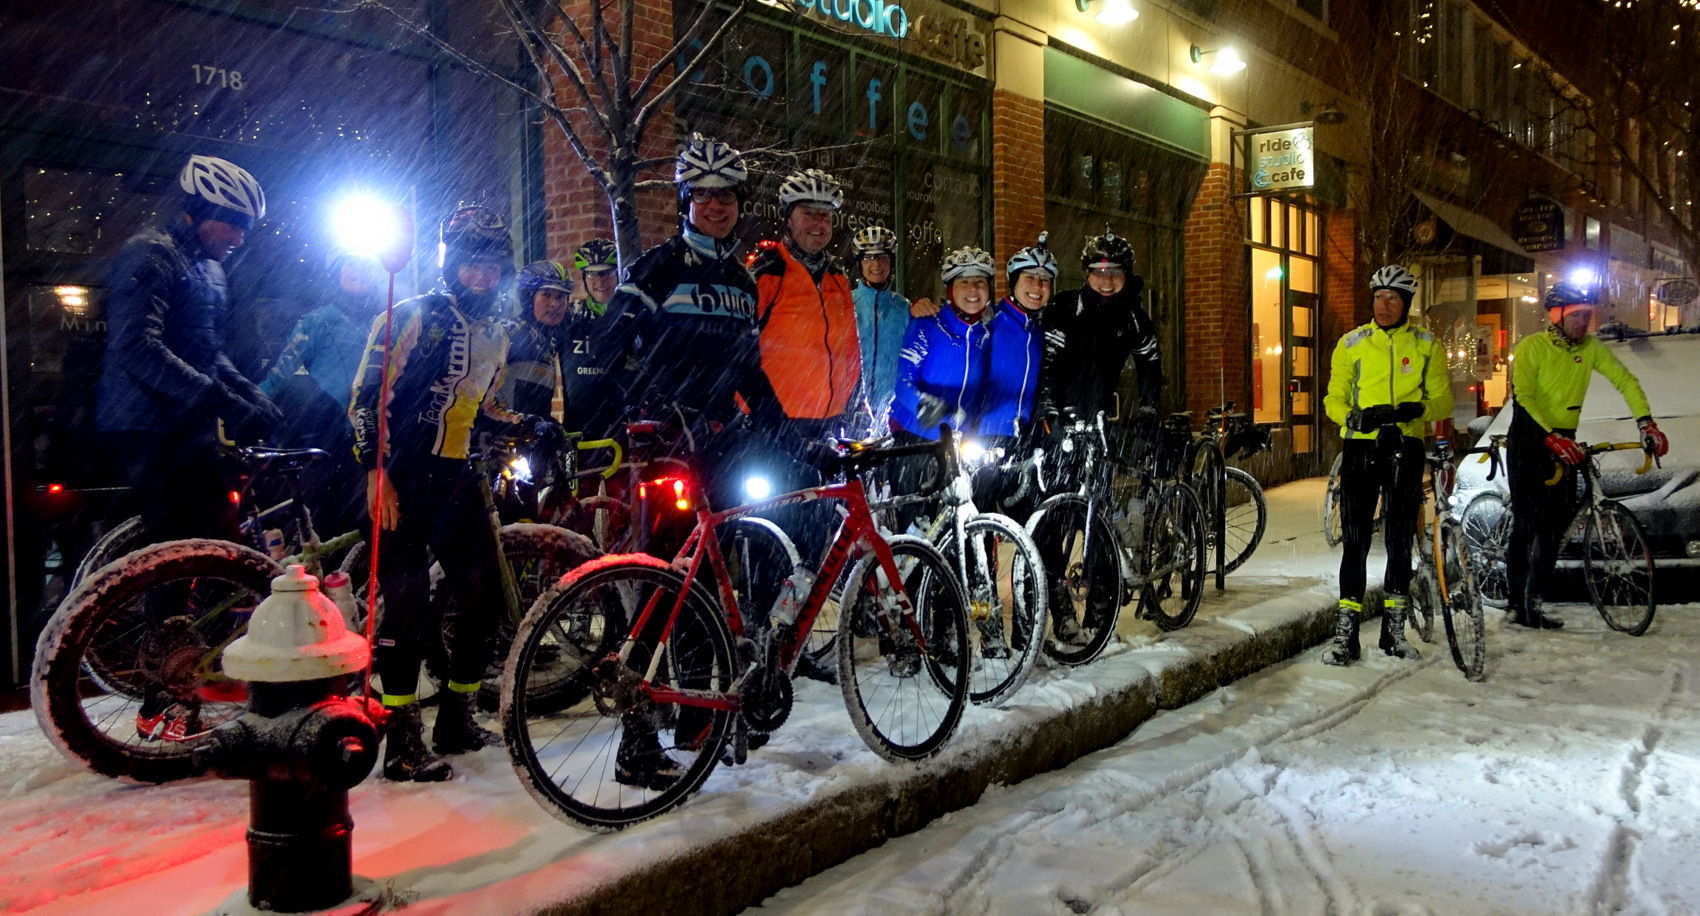 Pictured are the riders who attended the very first RSC First Snow Ride four years ago at 3am which is when the snow hit in 2015.